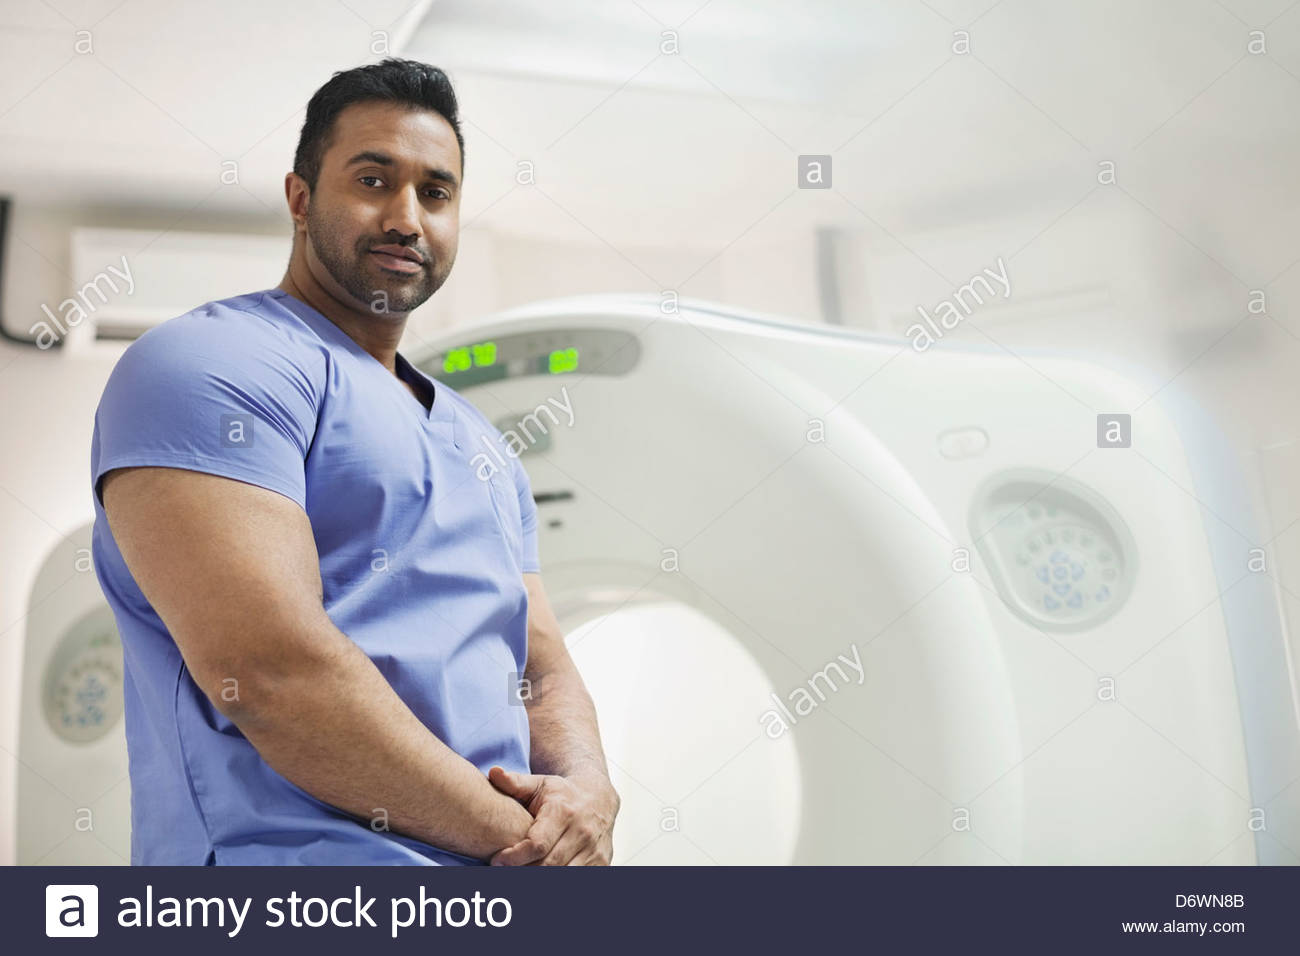 Portrait of mid adult male radiologist in front of CAT scan machine - Stock Image